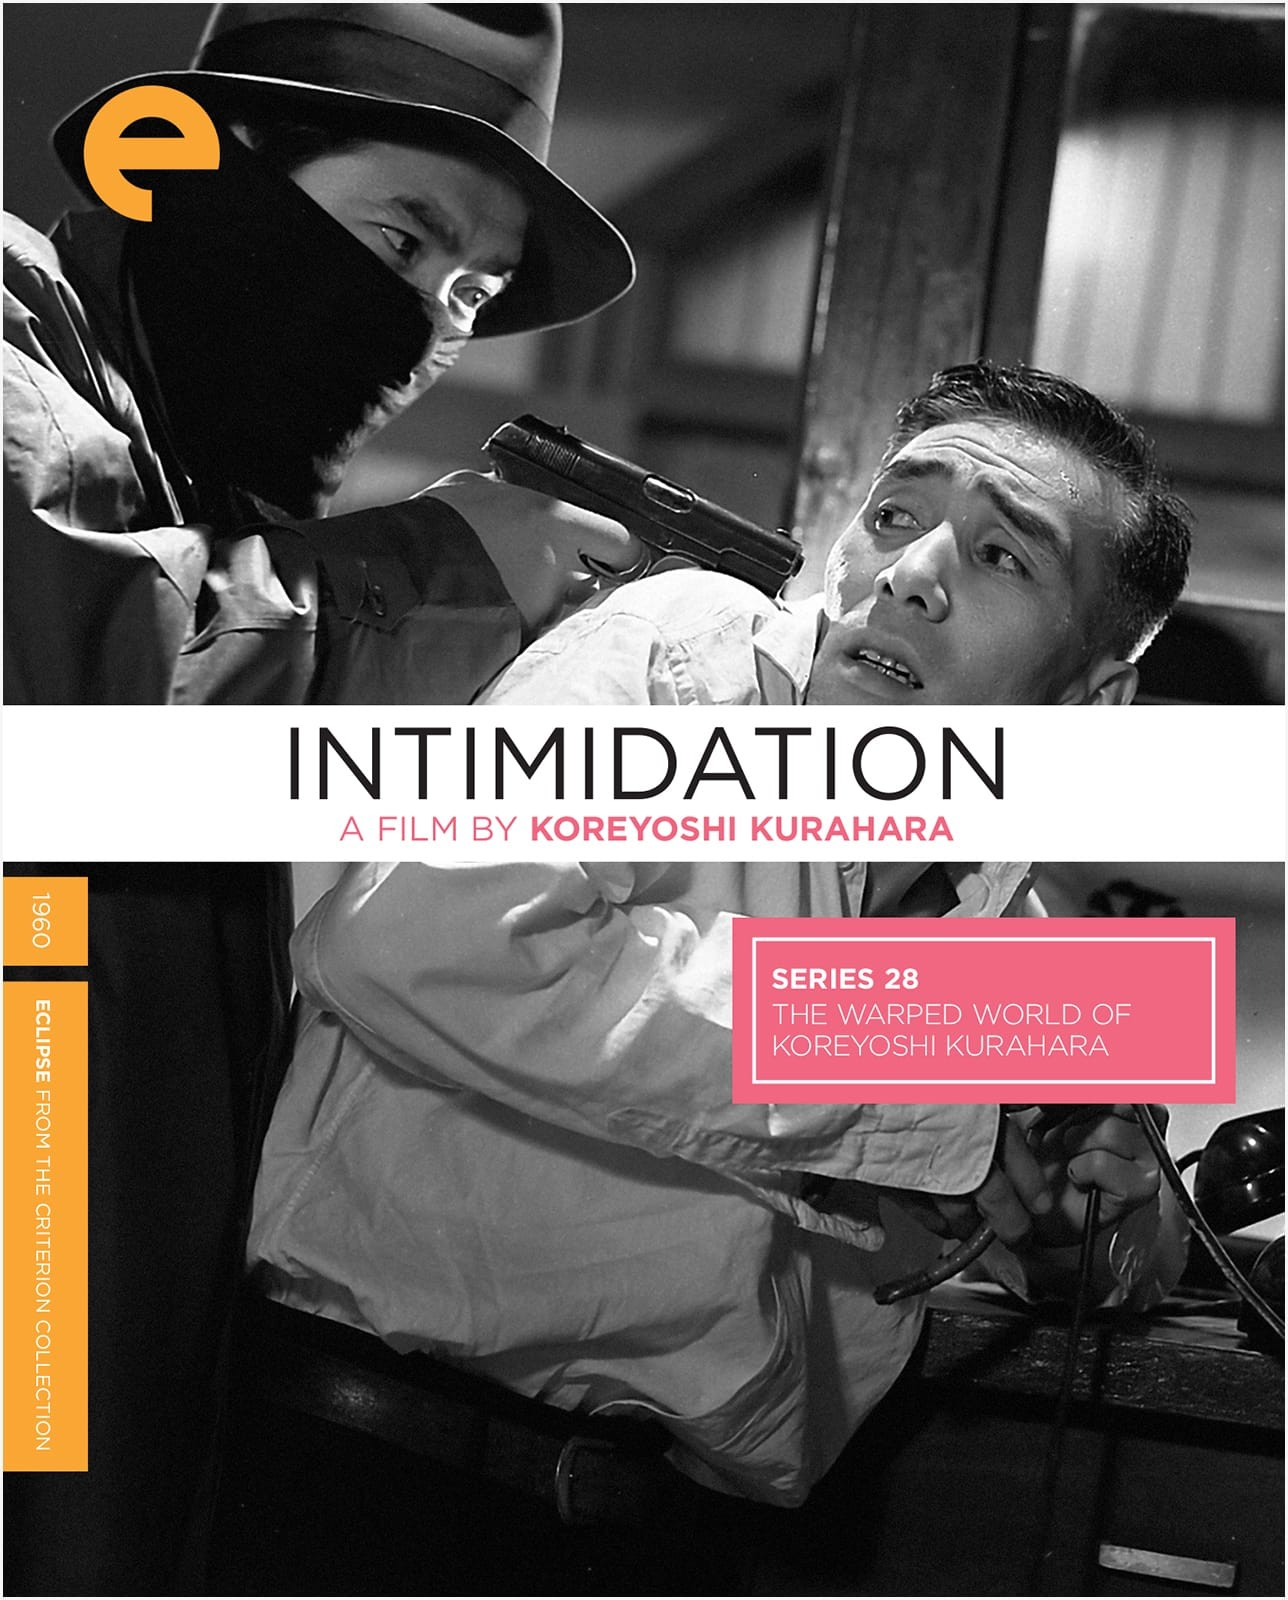 Intimidation (1960) | The Criterion Collection